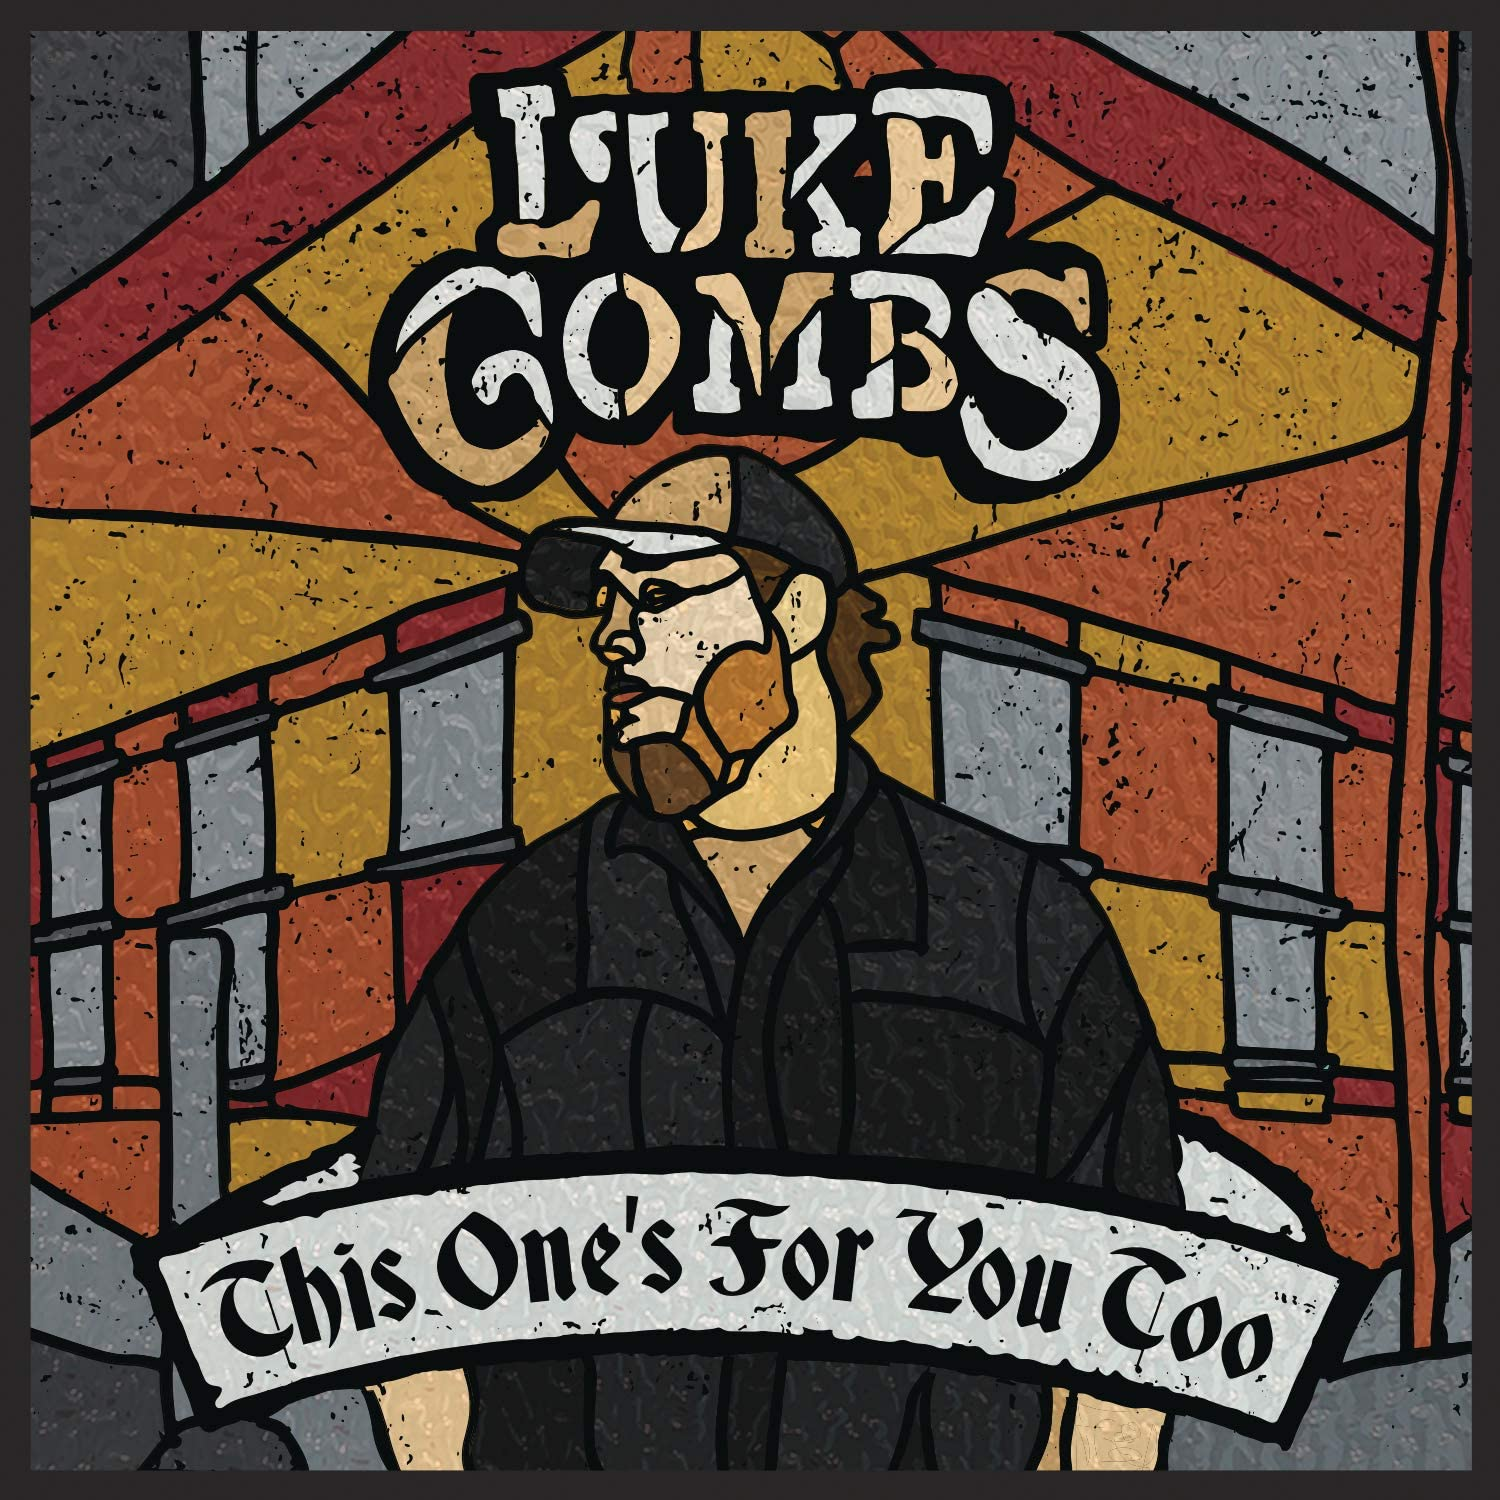 Luke Combs THIS ONE'S FOR YOU TOO DOUBLE VINYL